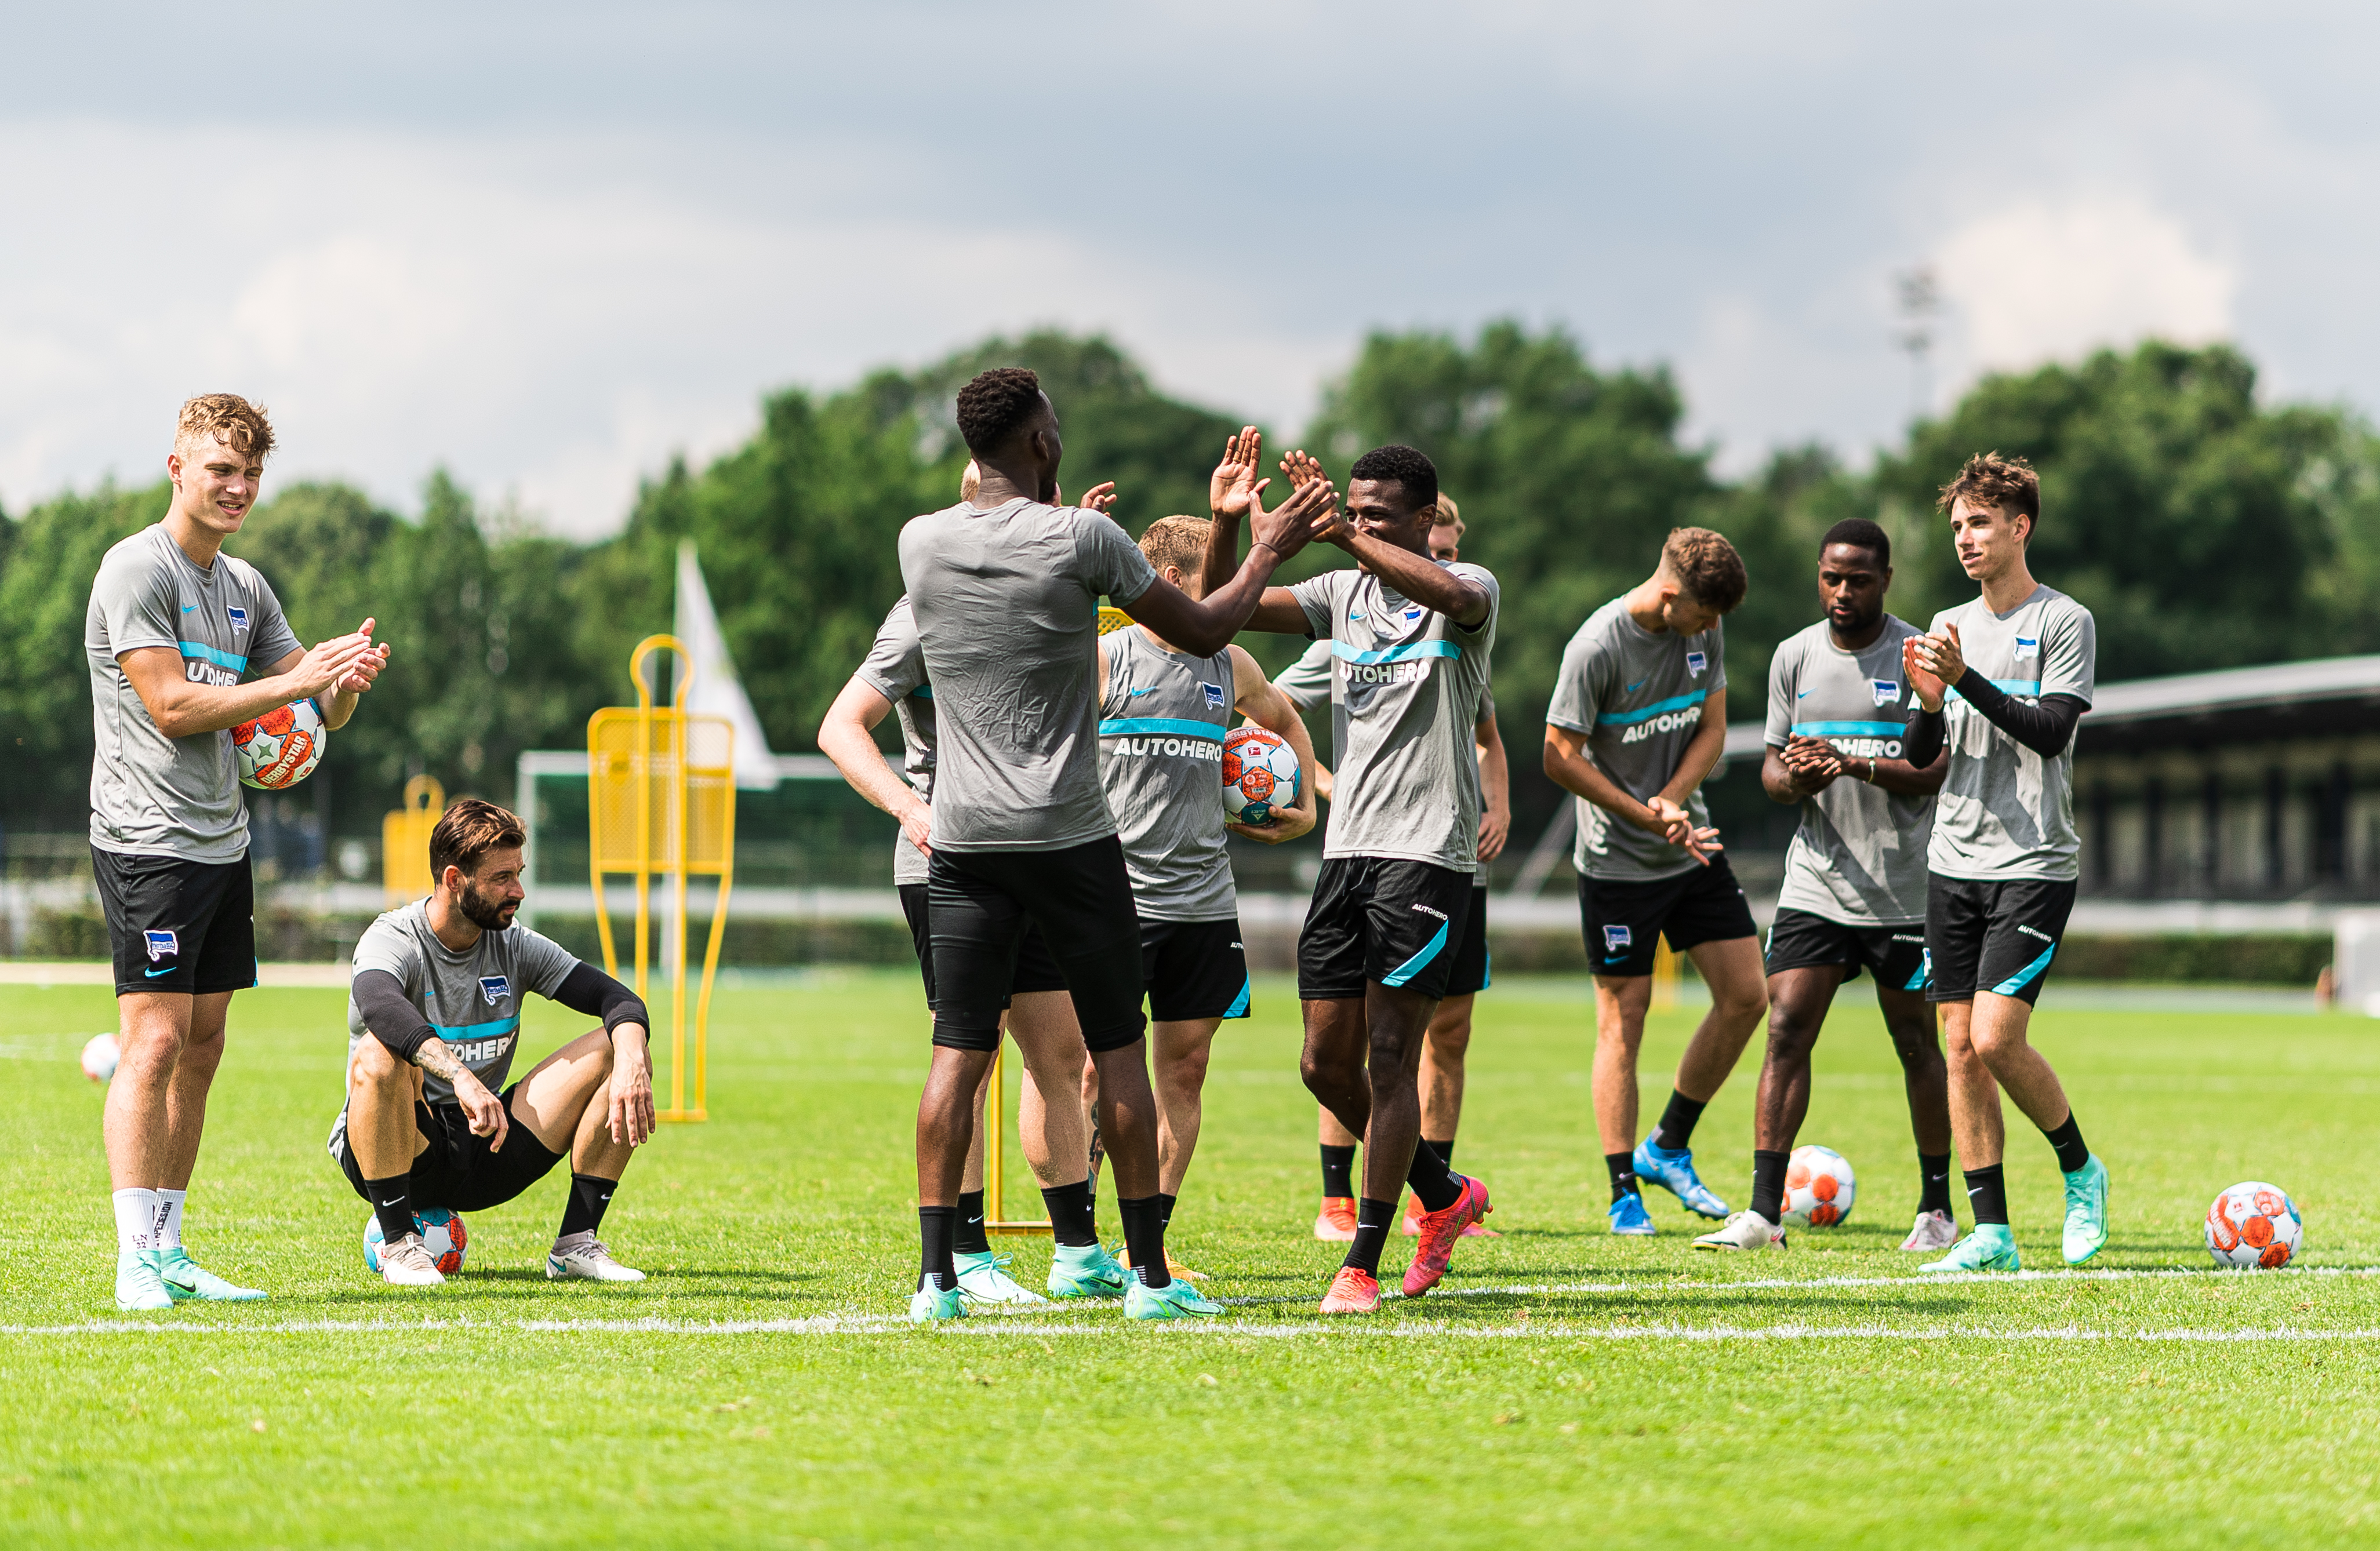 The lads complete another tough training session.